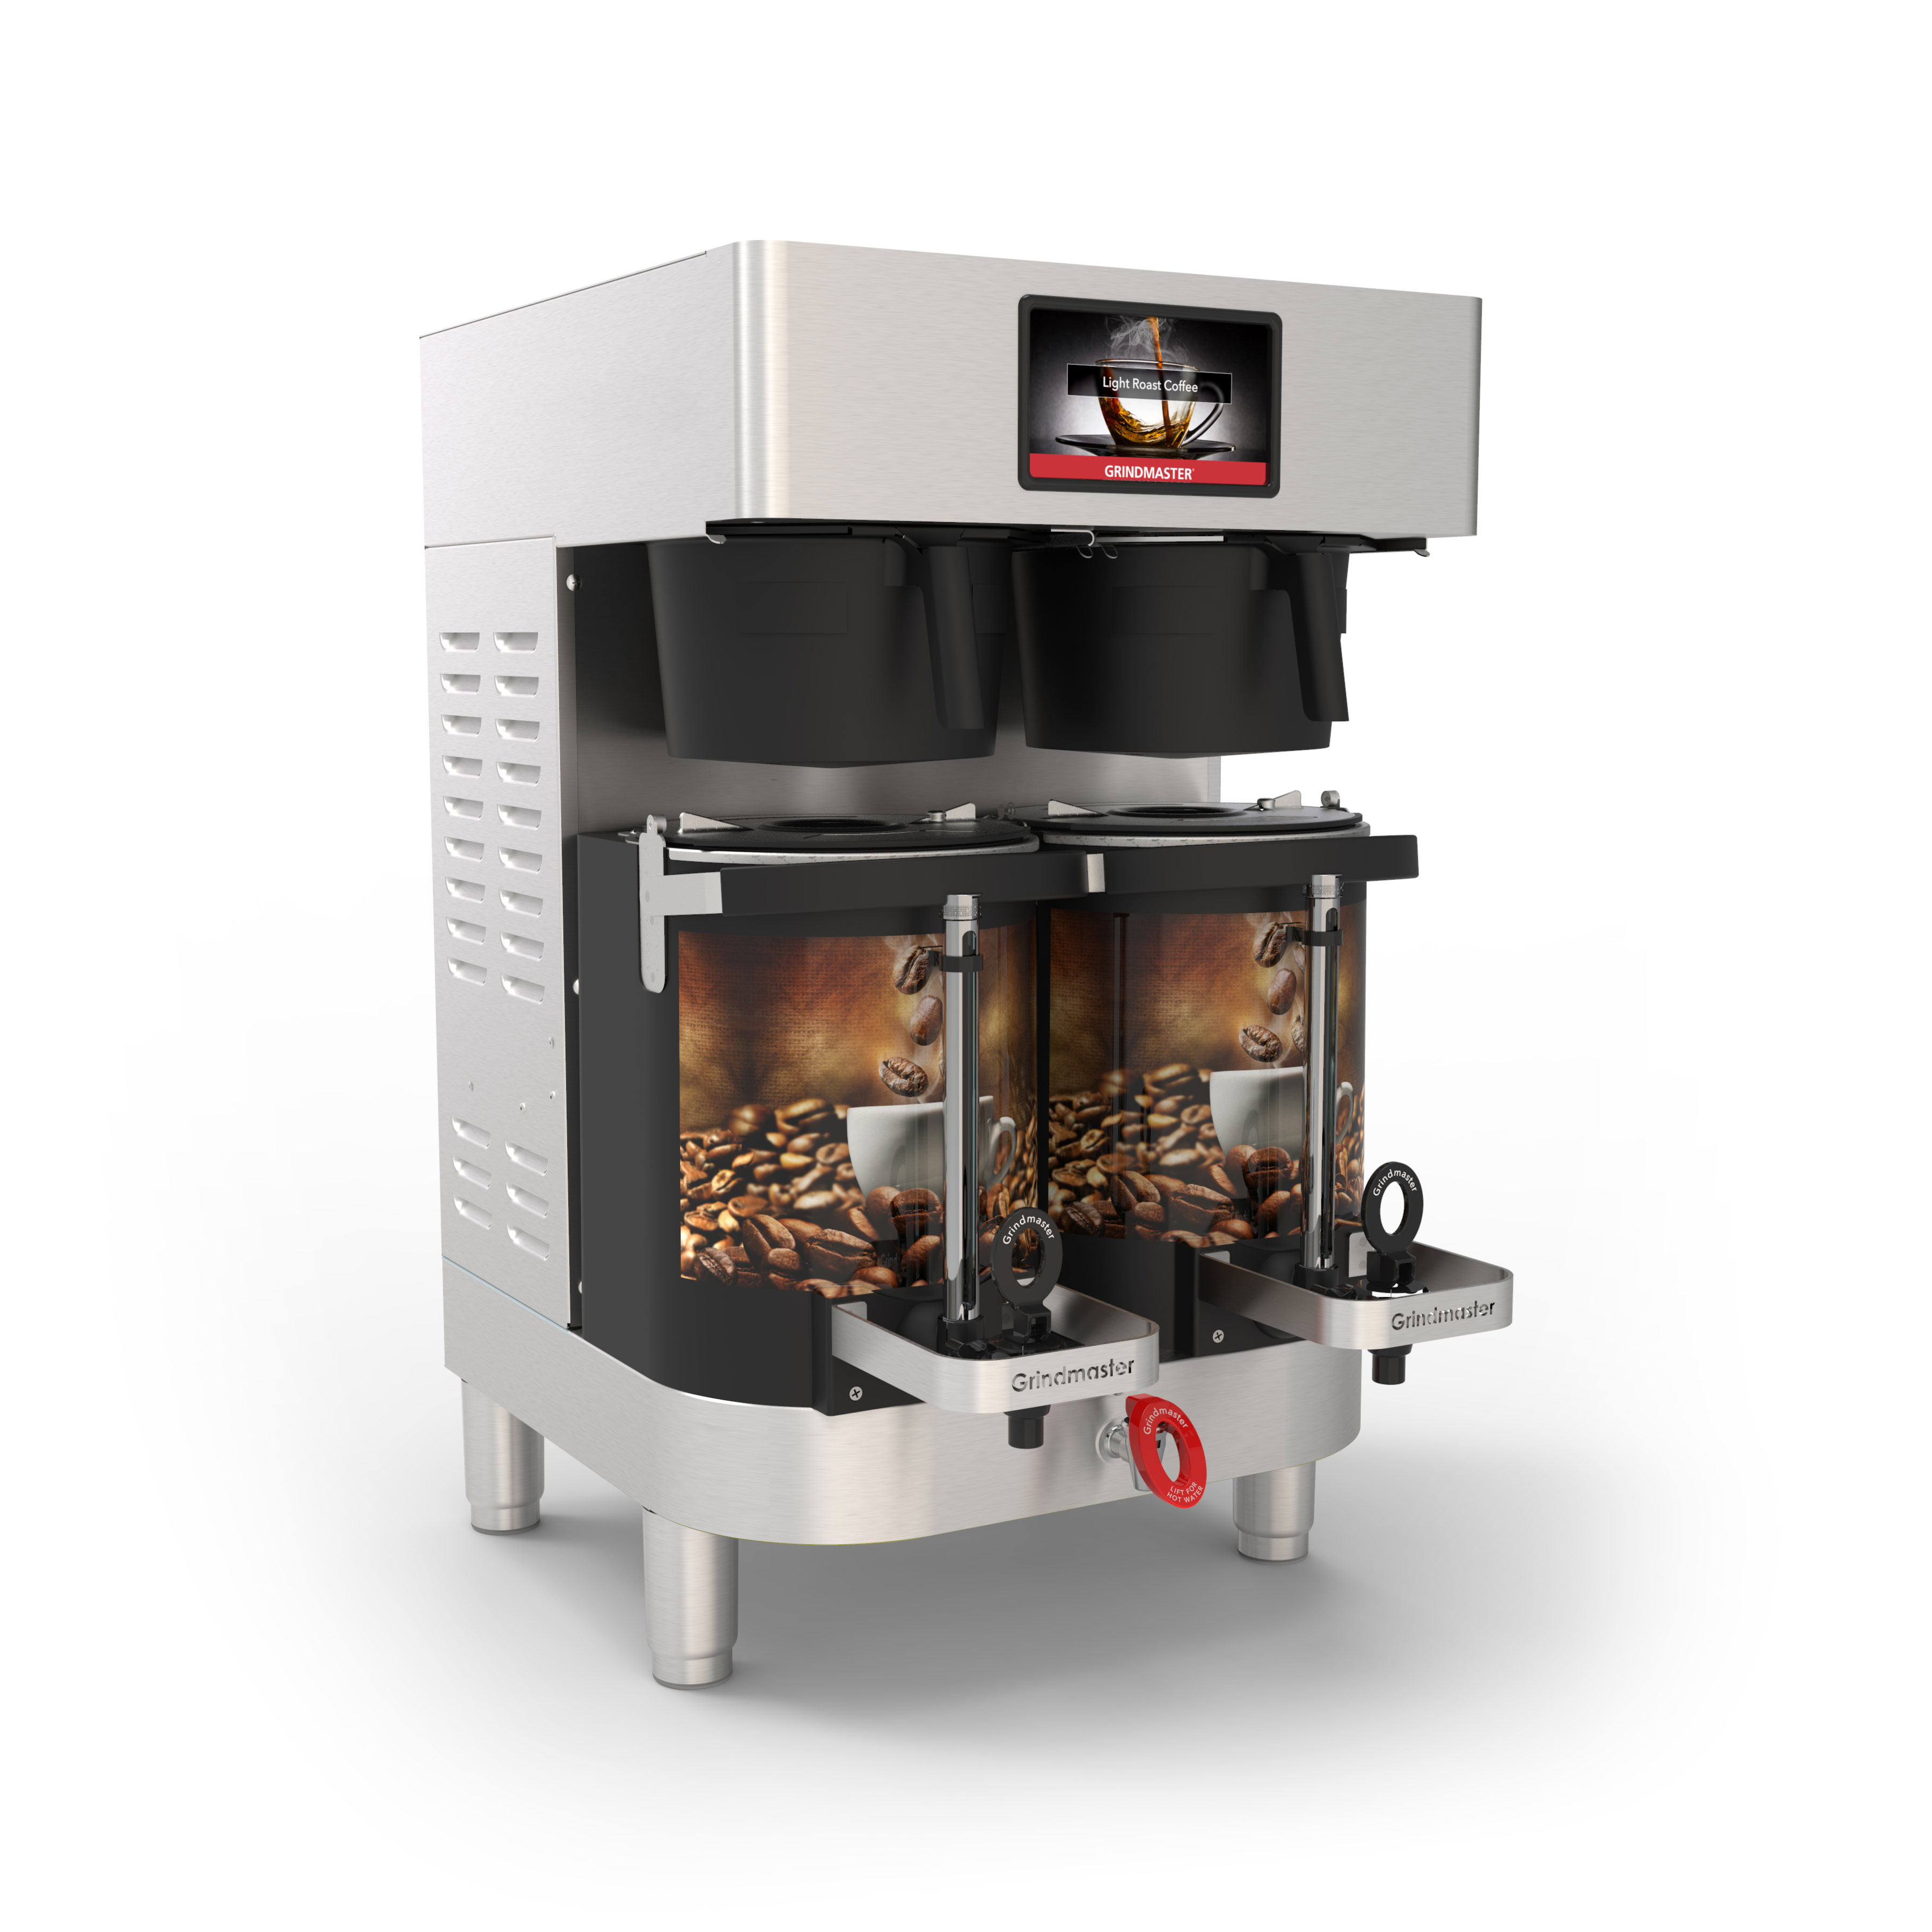 Grindmaster-Cecilware PBC-2W coffee brewer for satellites